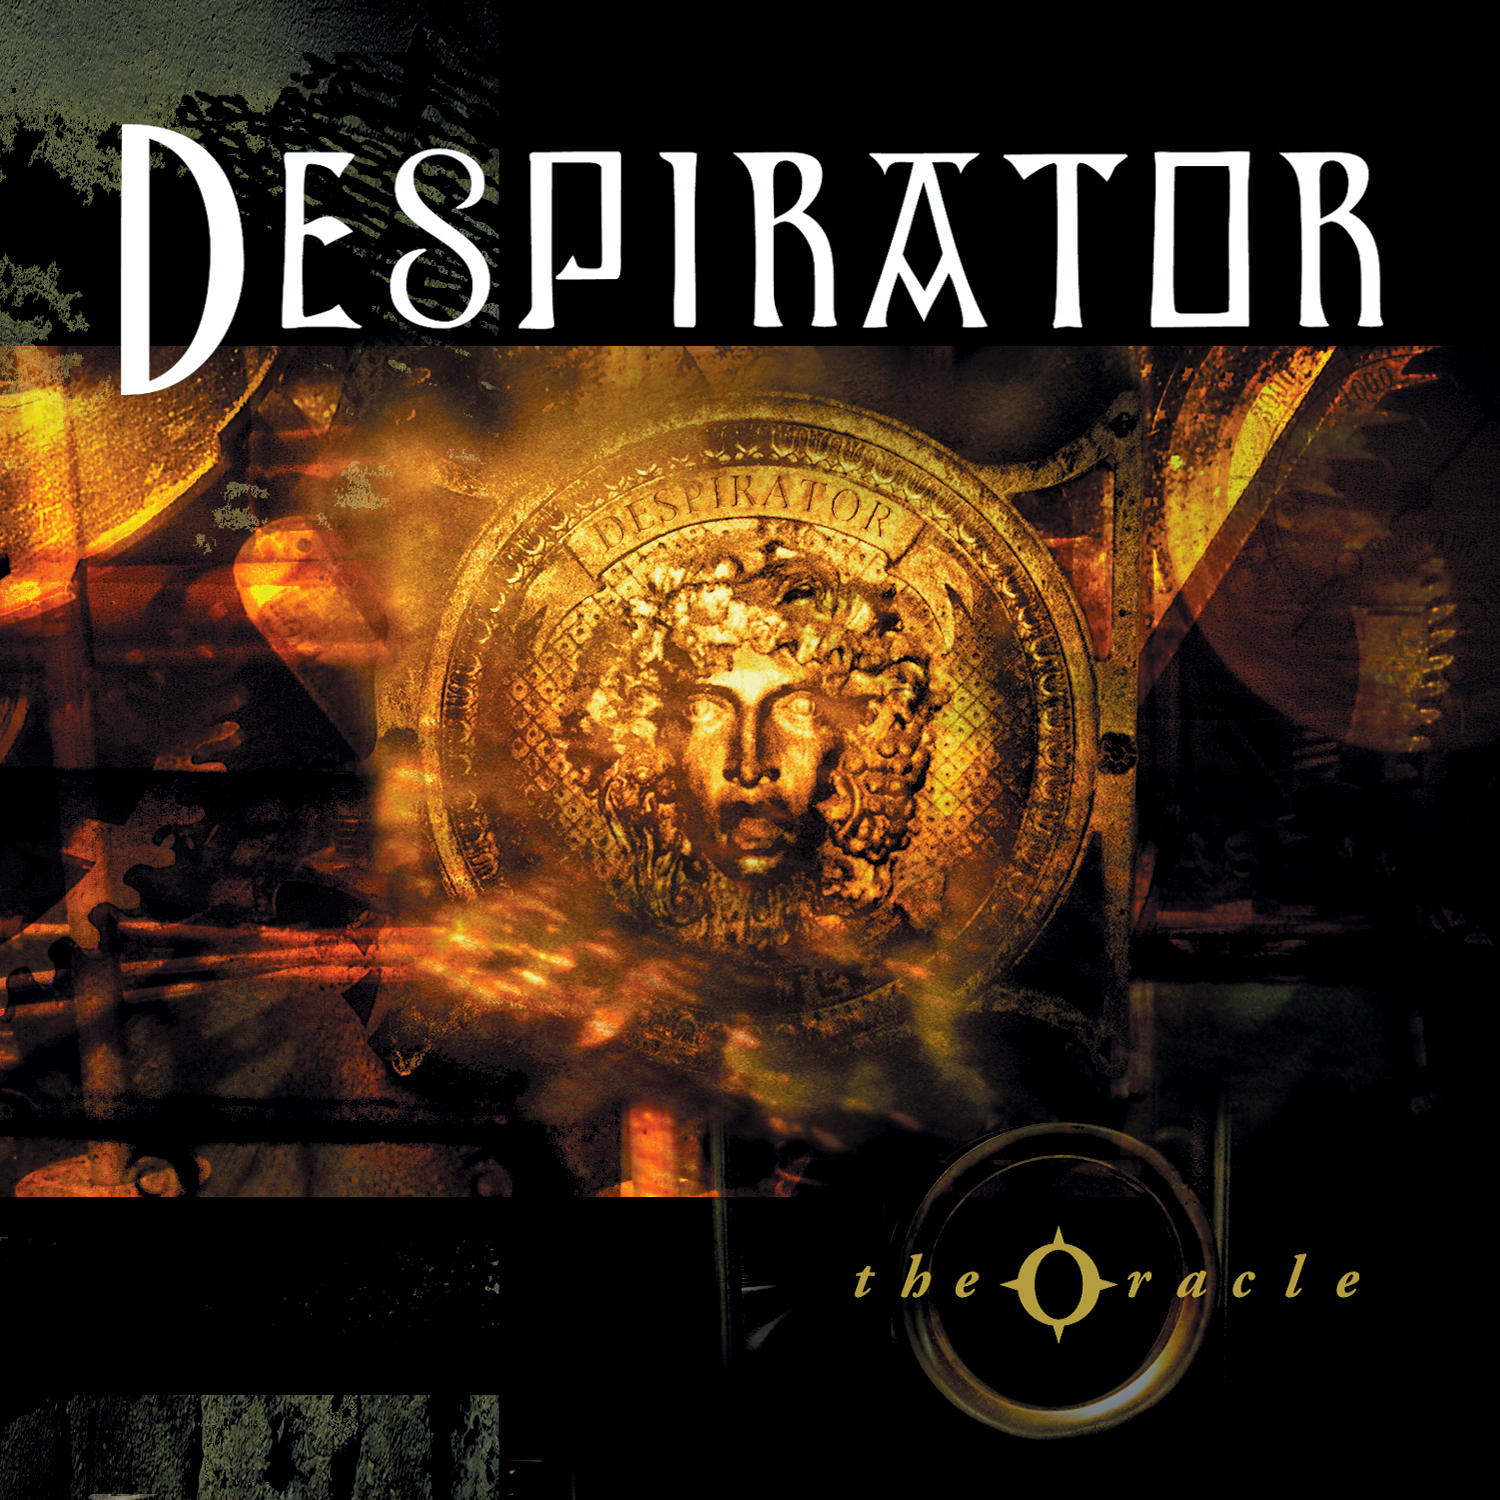 DESPIRATOR - THE ORACLE